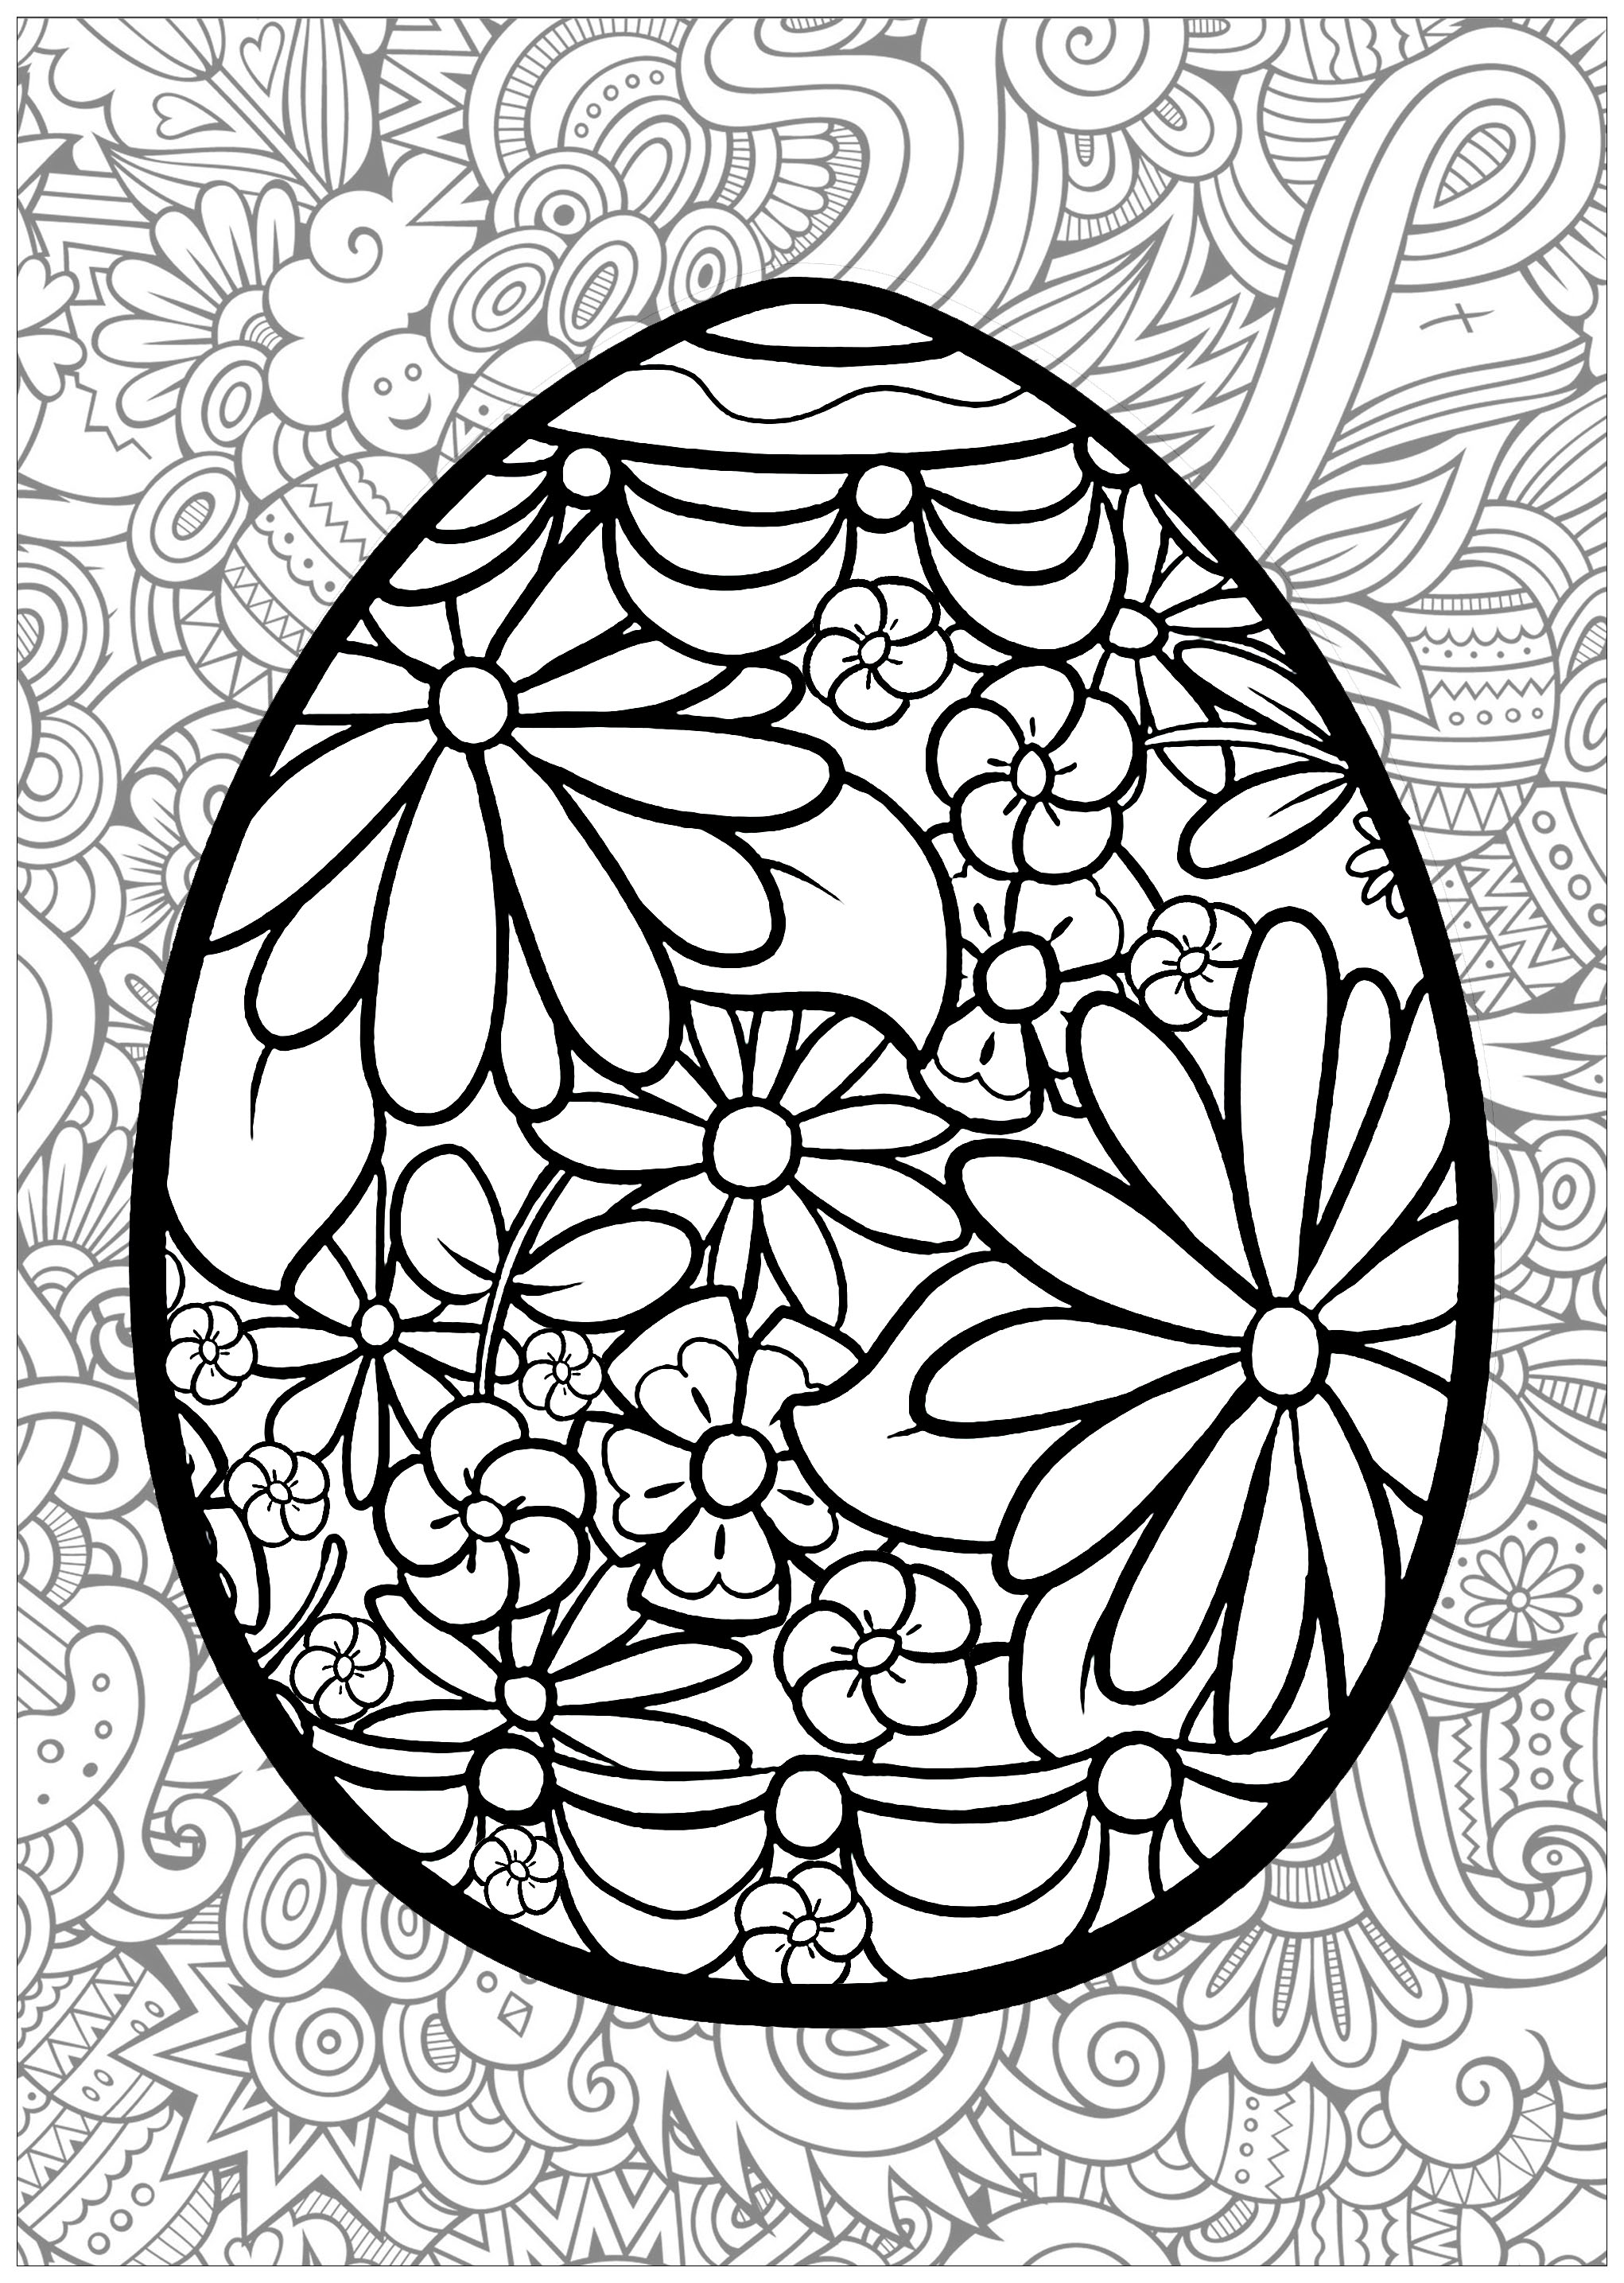 Easter egg with flowers, and thematic background